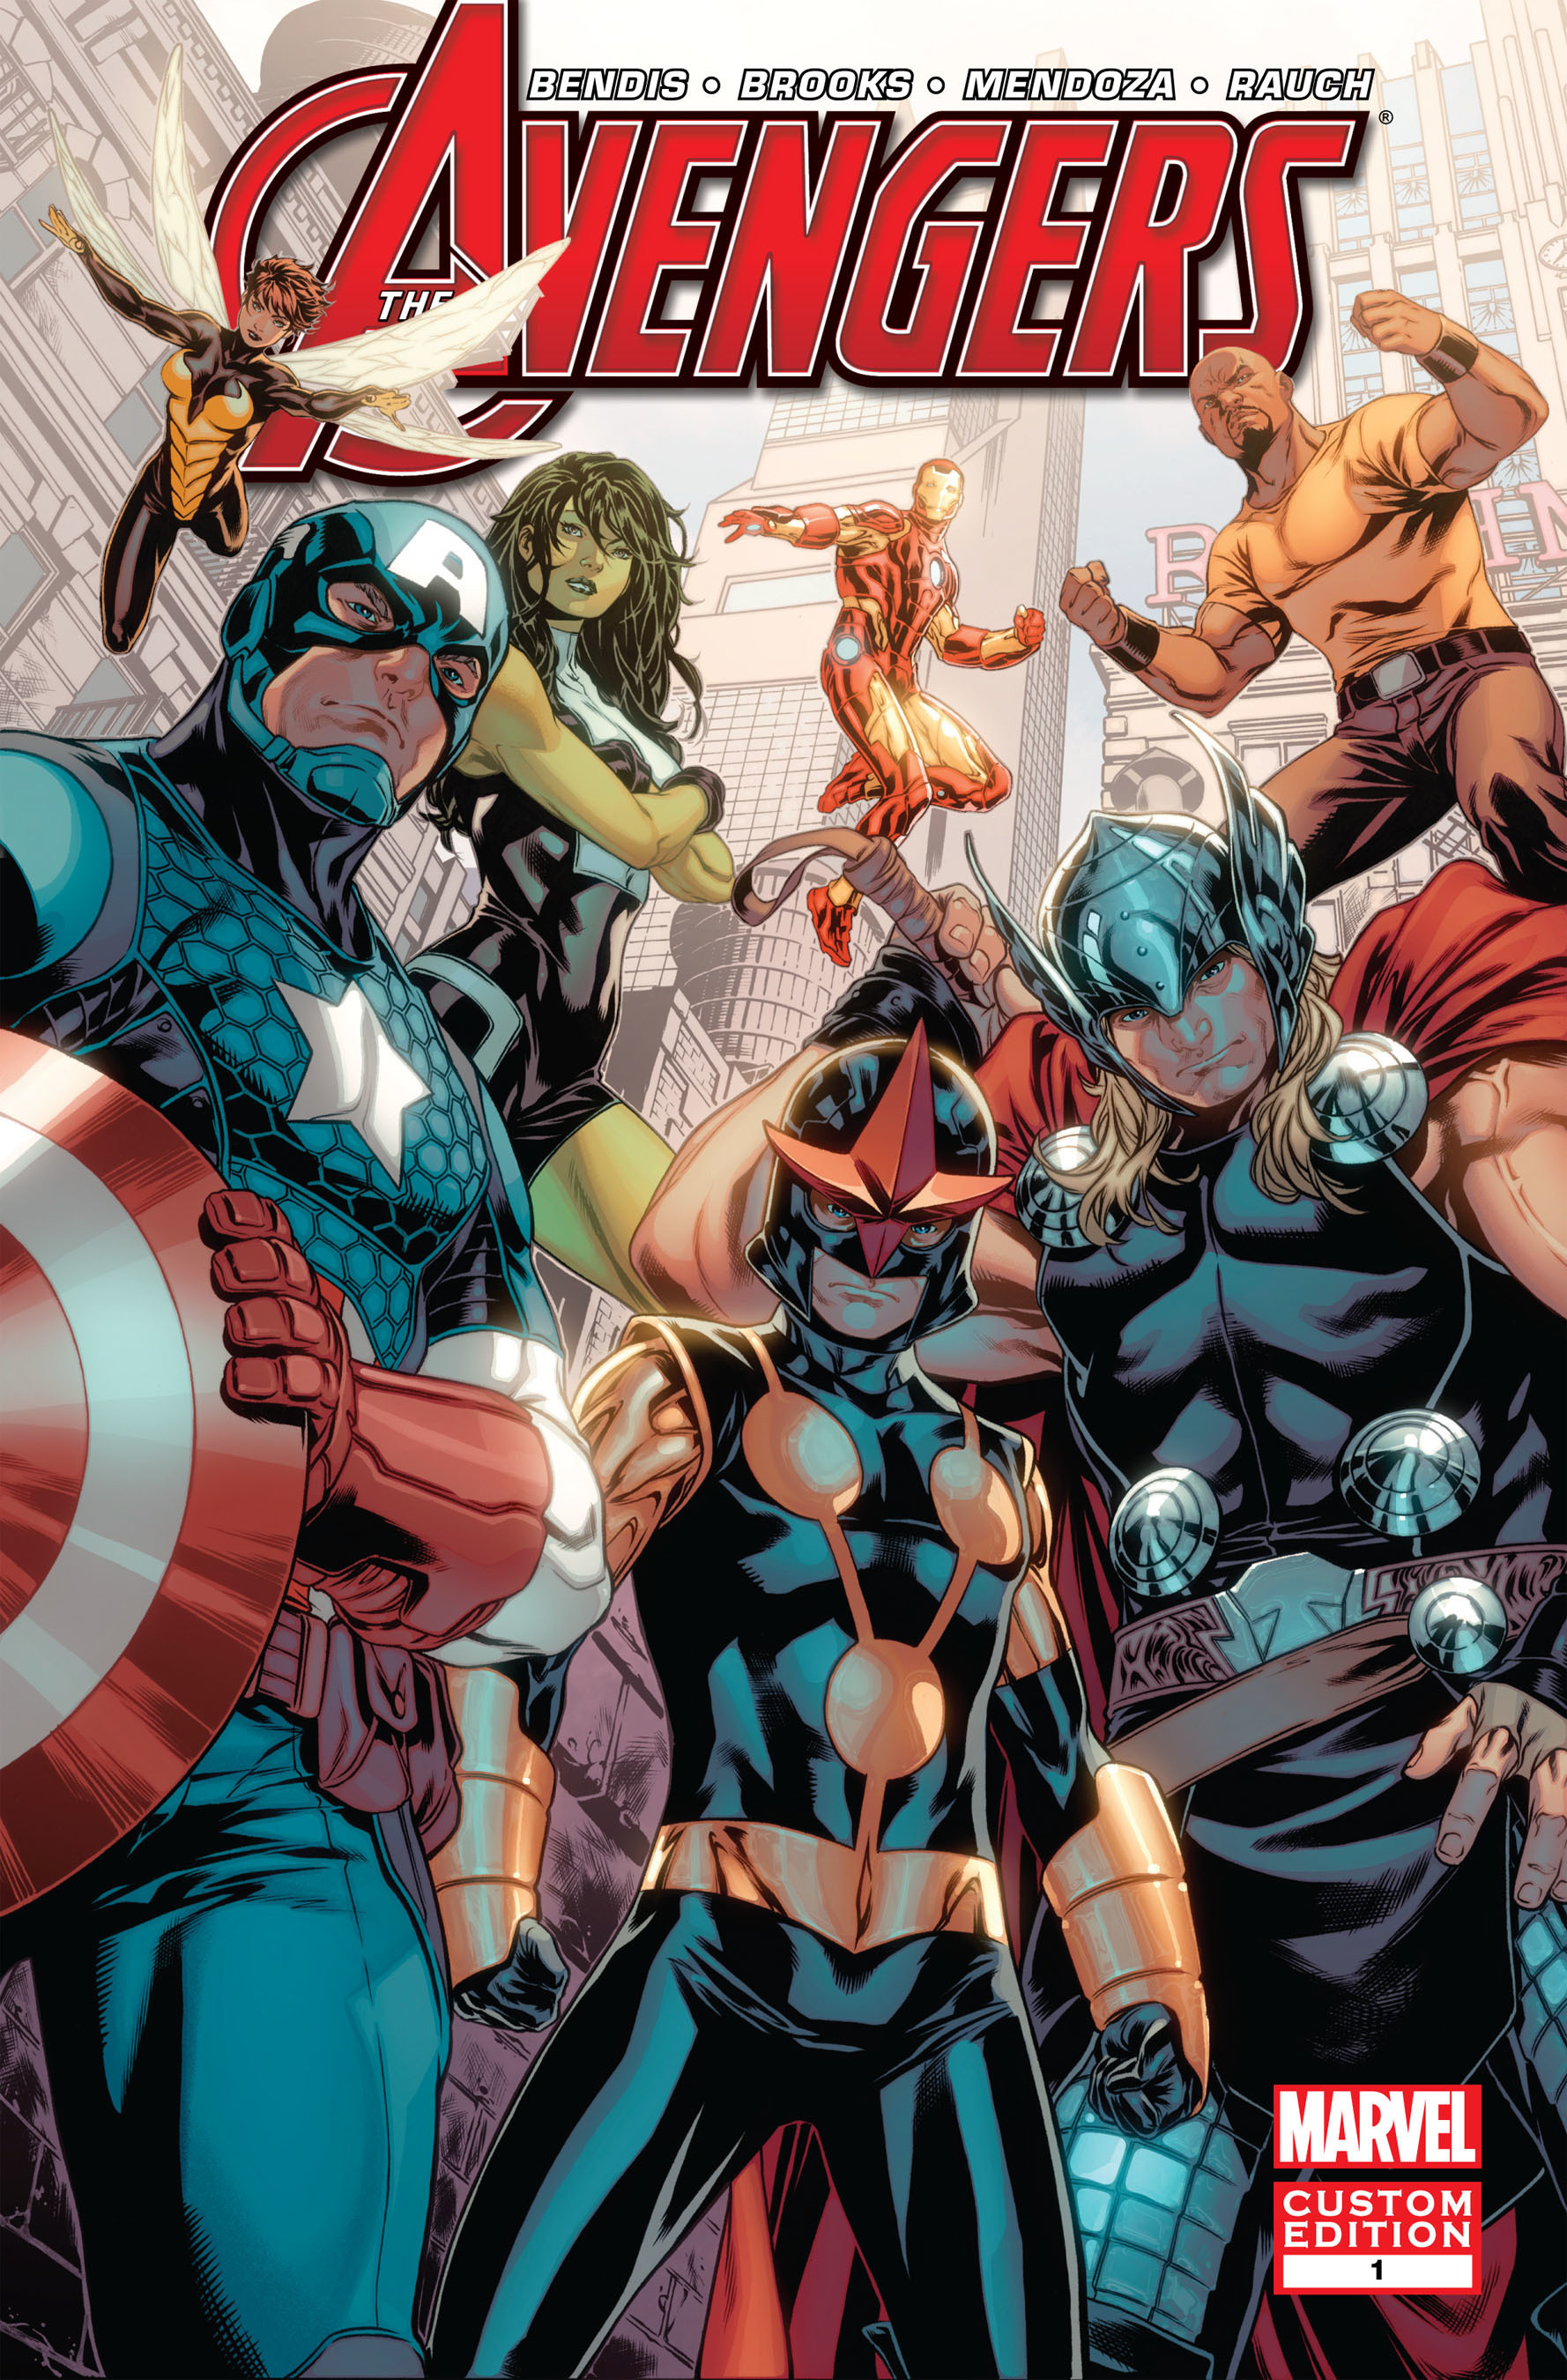 New Avengers Comic Book By Marvel is Announced